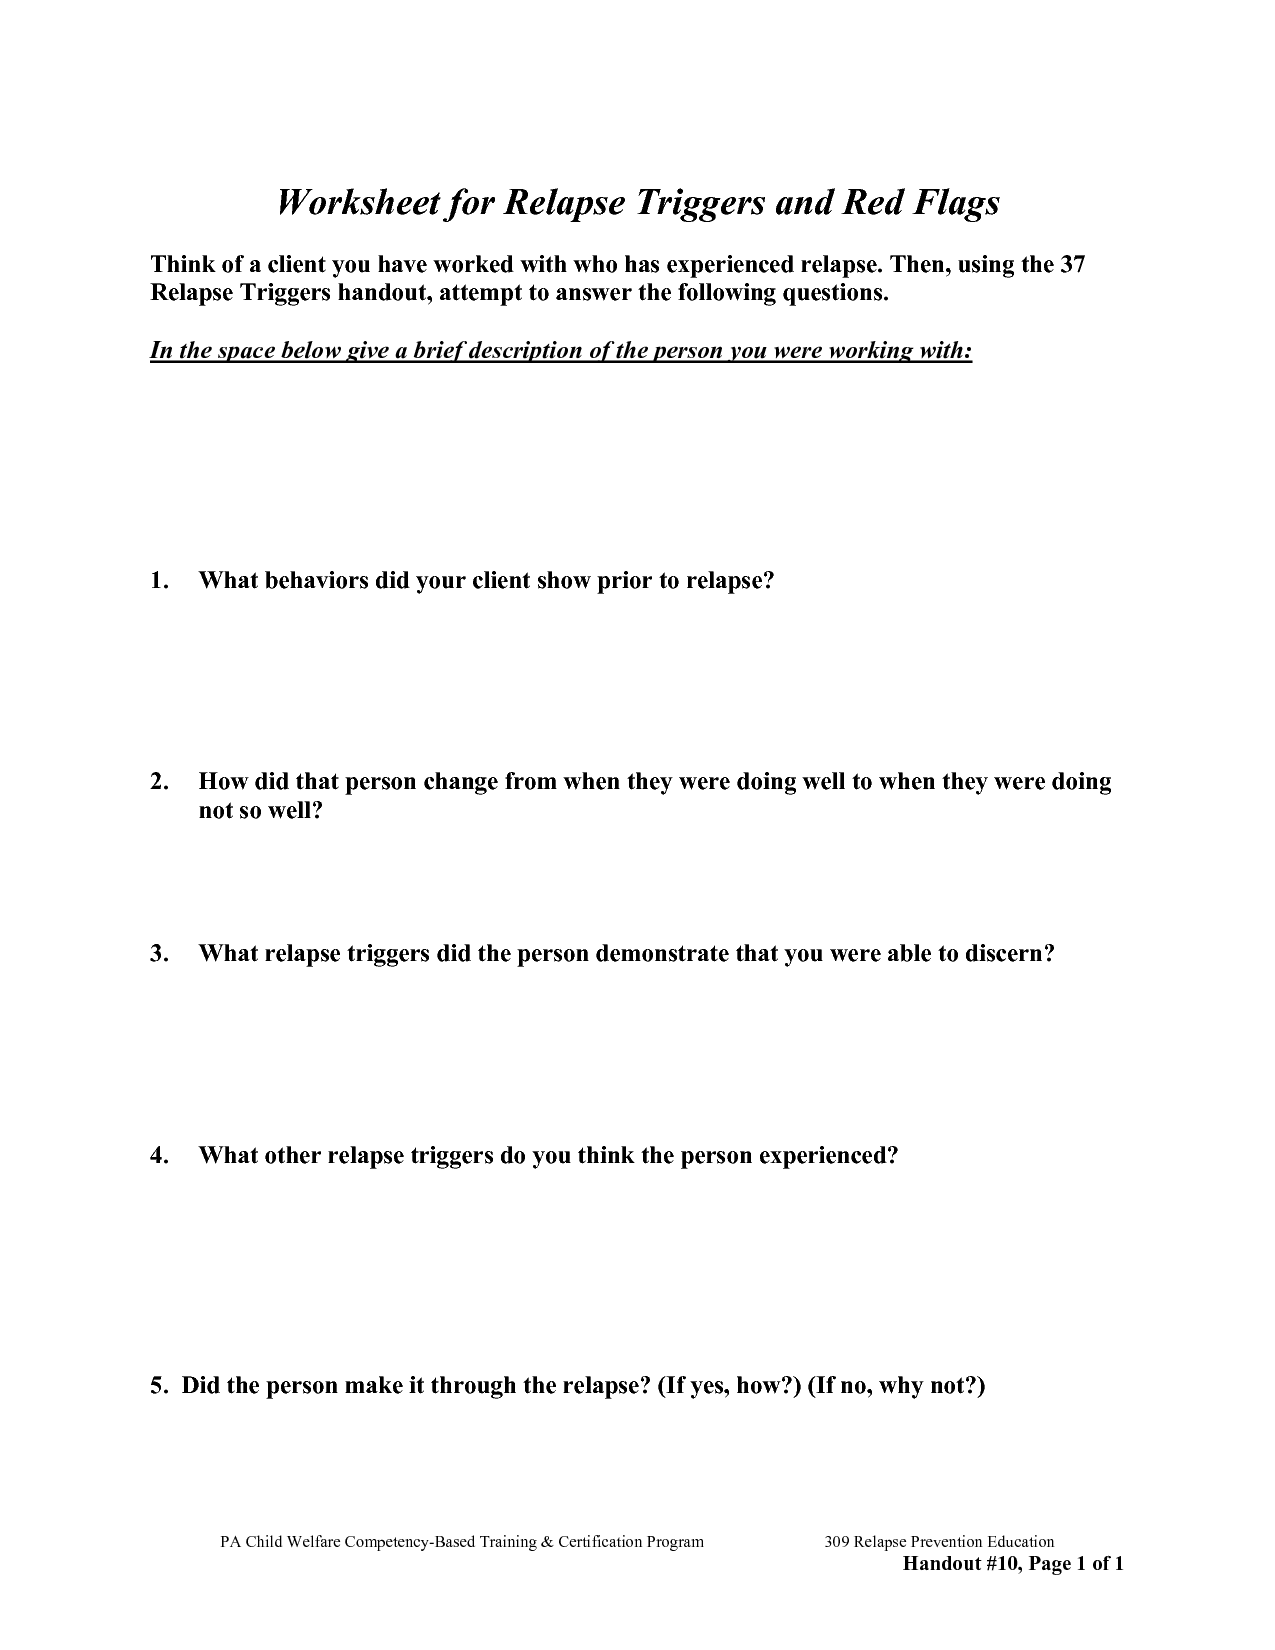 Free Worksheets For Recovery Relapse Prevention Addiction Women